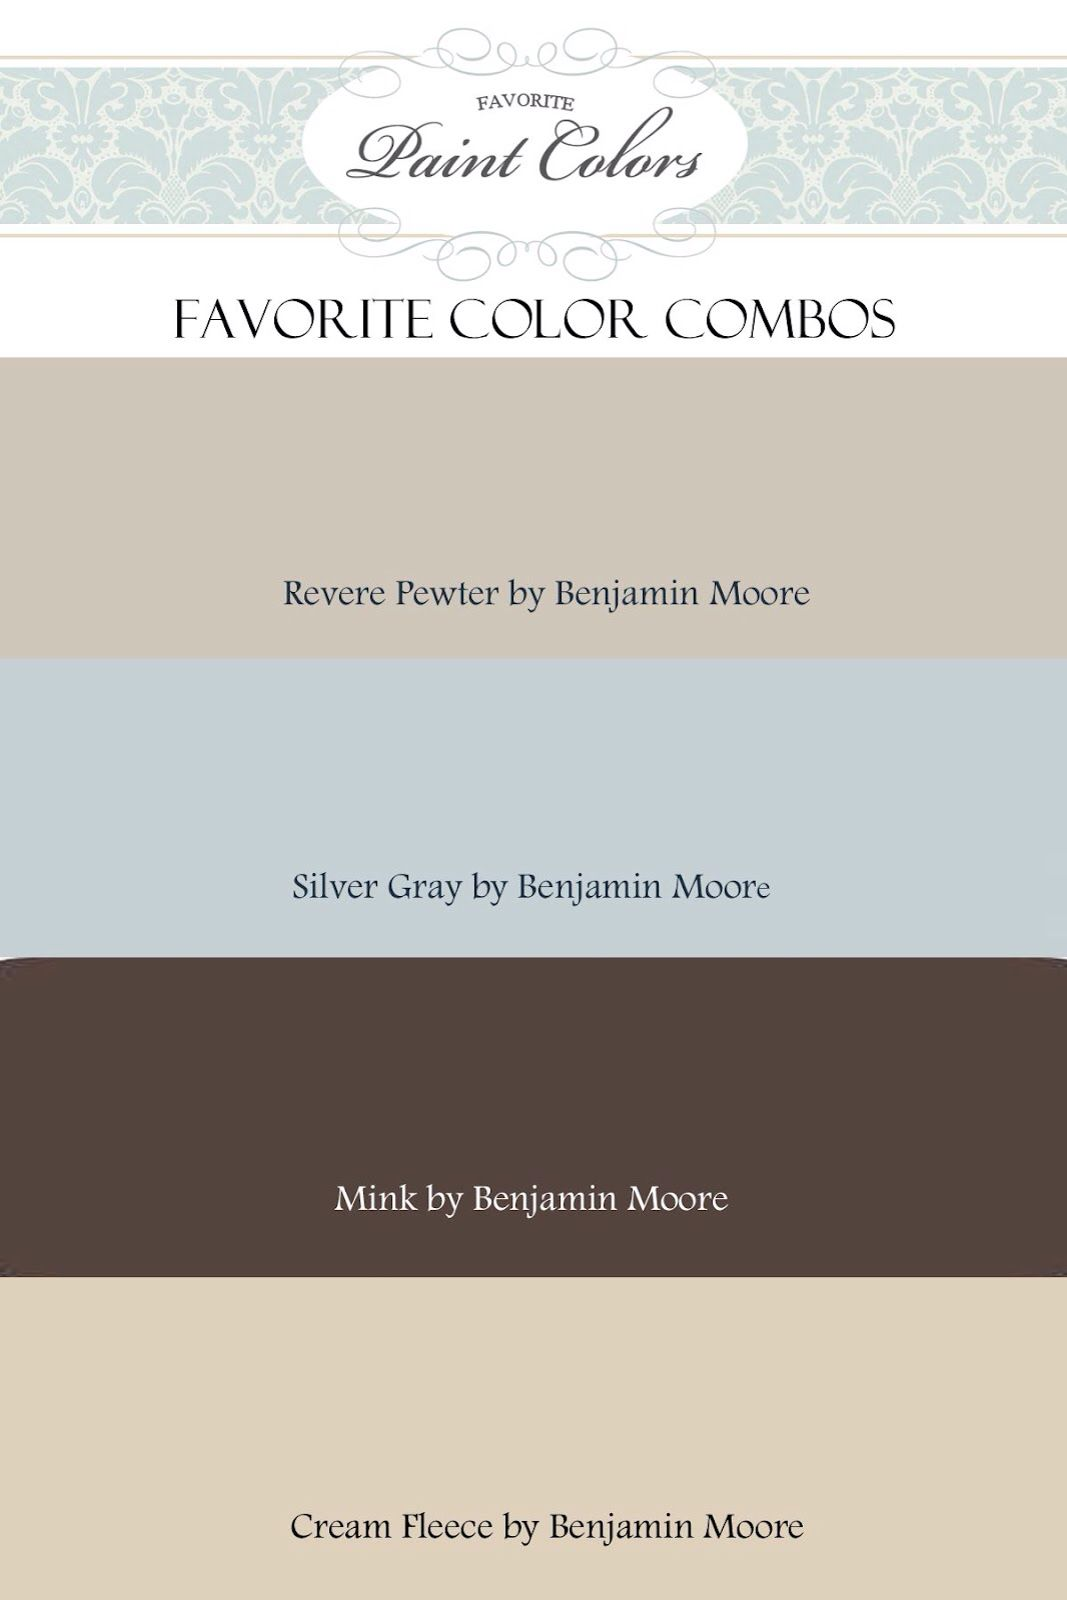 Silver Gray Favorite Paint Color Website Designed To Let You See What Colors Look Like In A Home